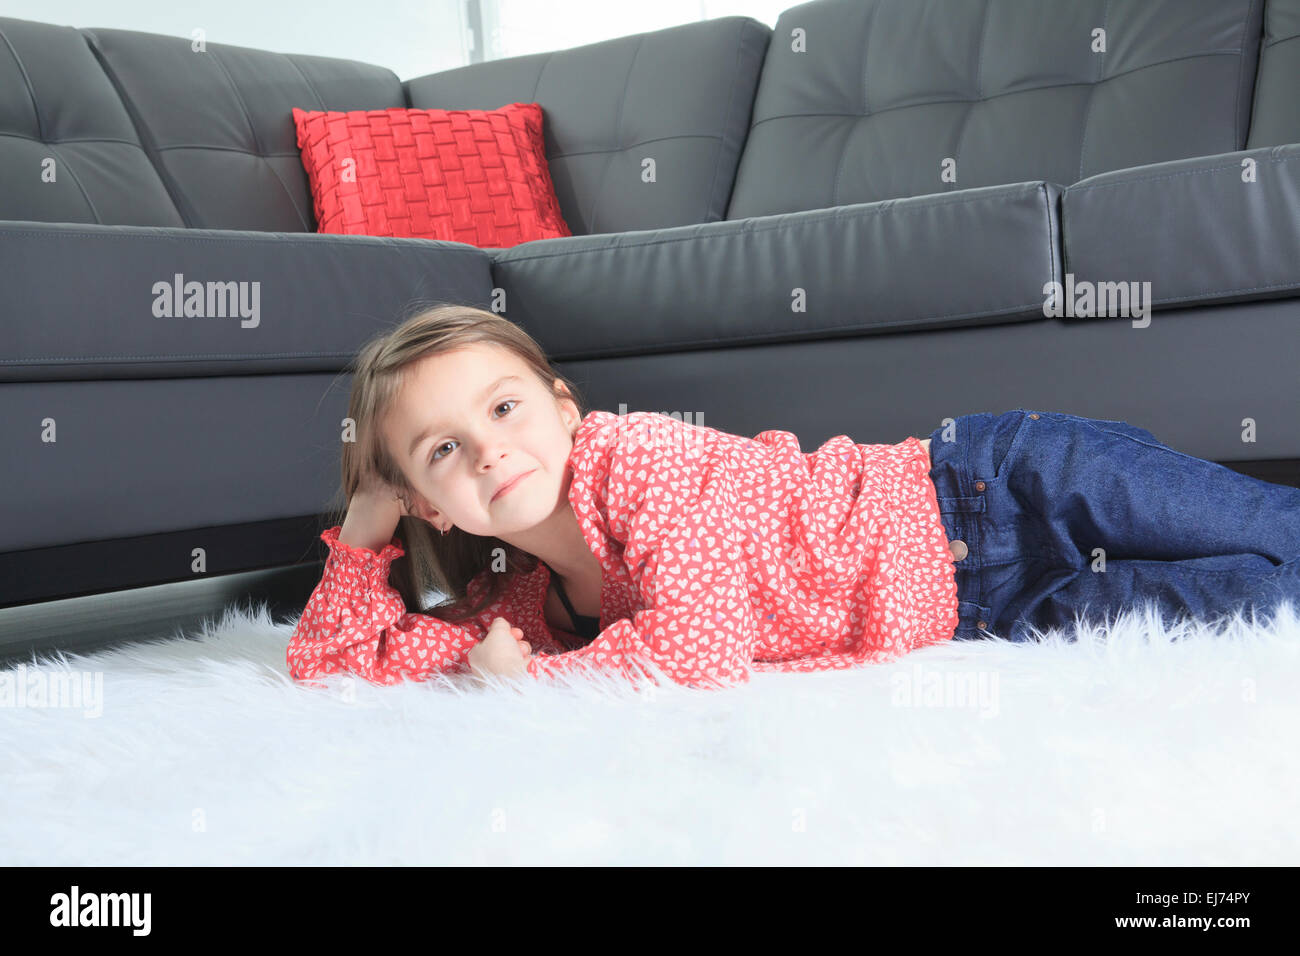 8 years old child laying down at home alone stock photo 80062723 rh alamy com down home at the farm home depot downspout